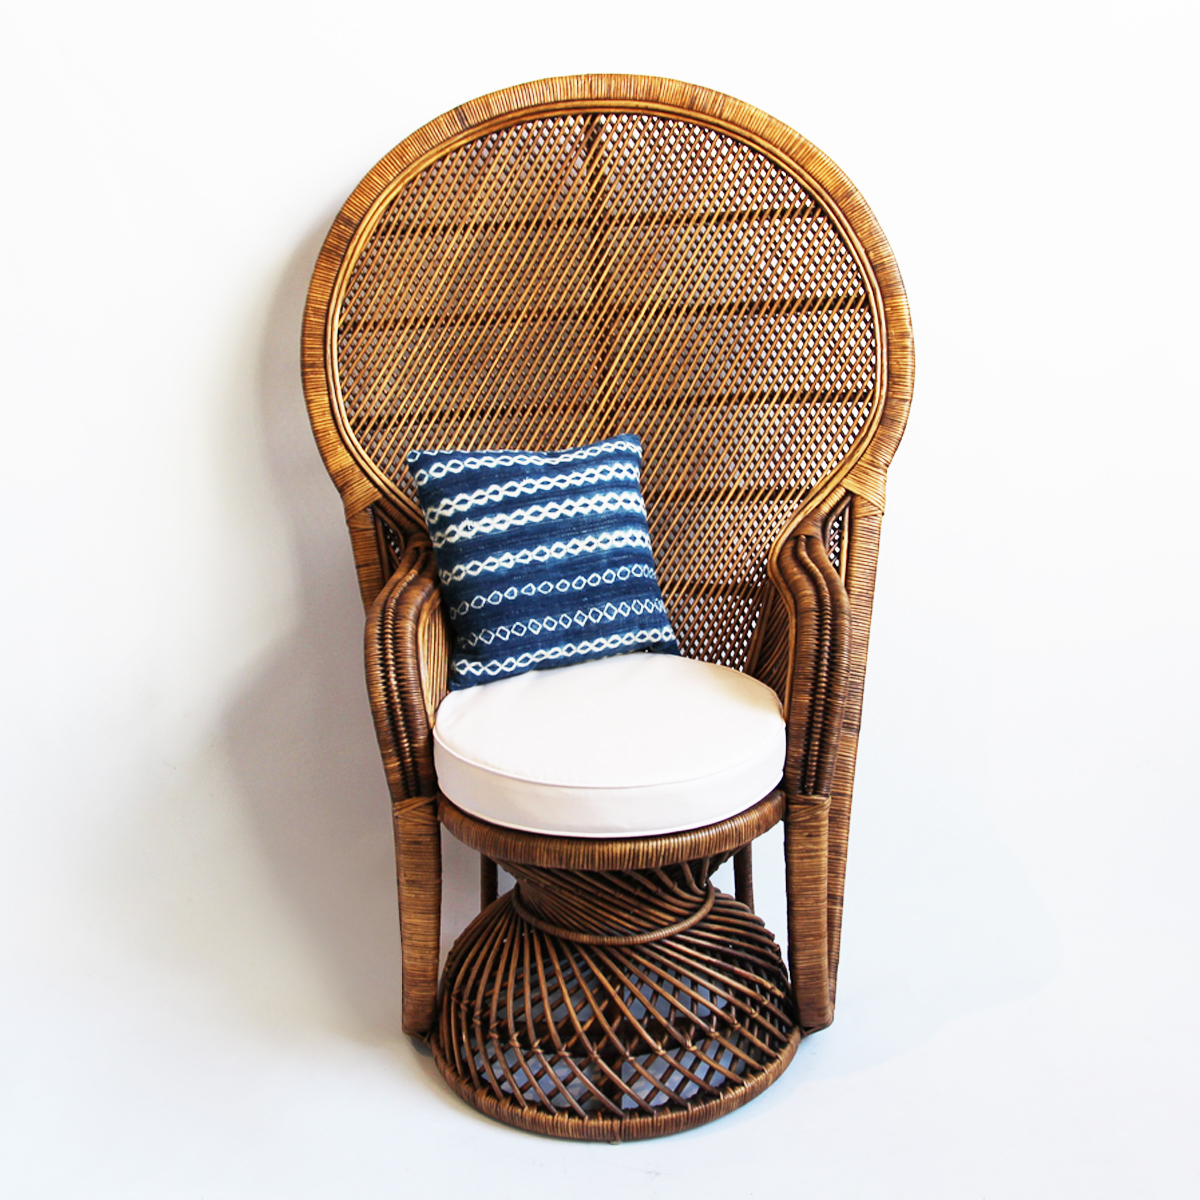 Plantation Peacock Chair Furniture | Design MIX Gallery